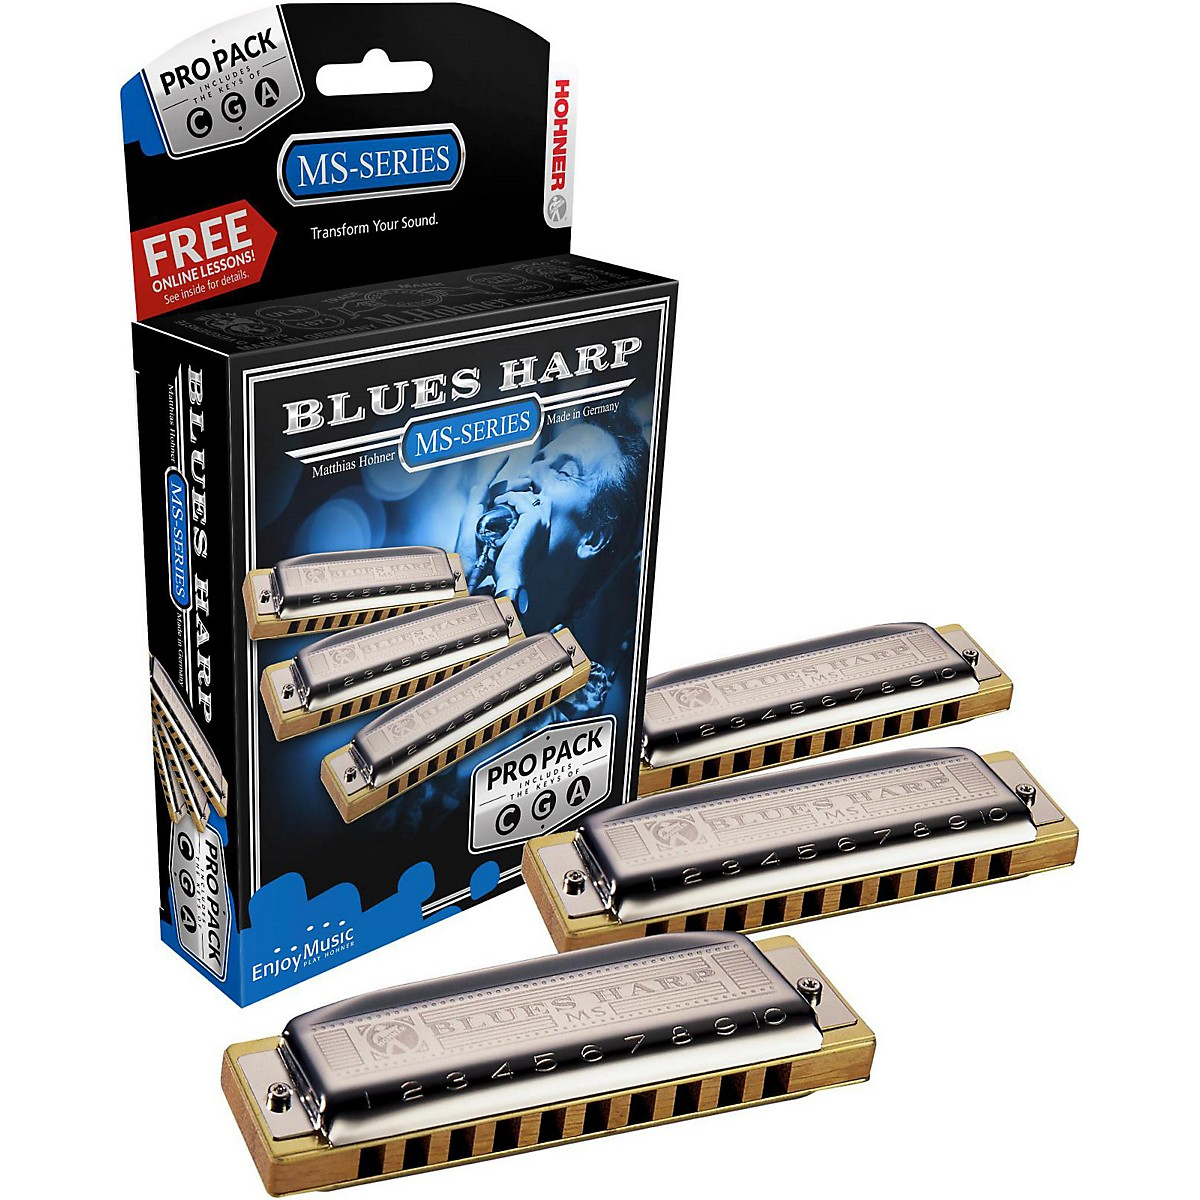 Hohner 532 Blues Harp Pro Pack - MS-Series Harmonicas